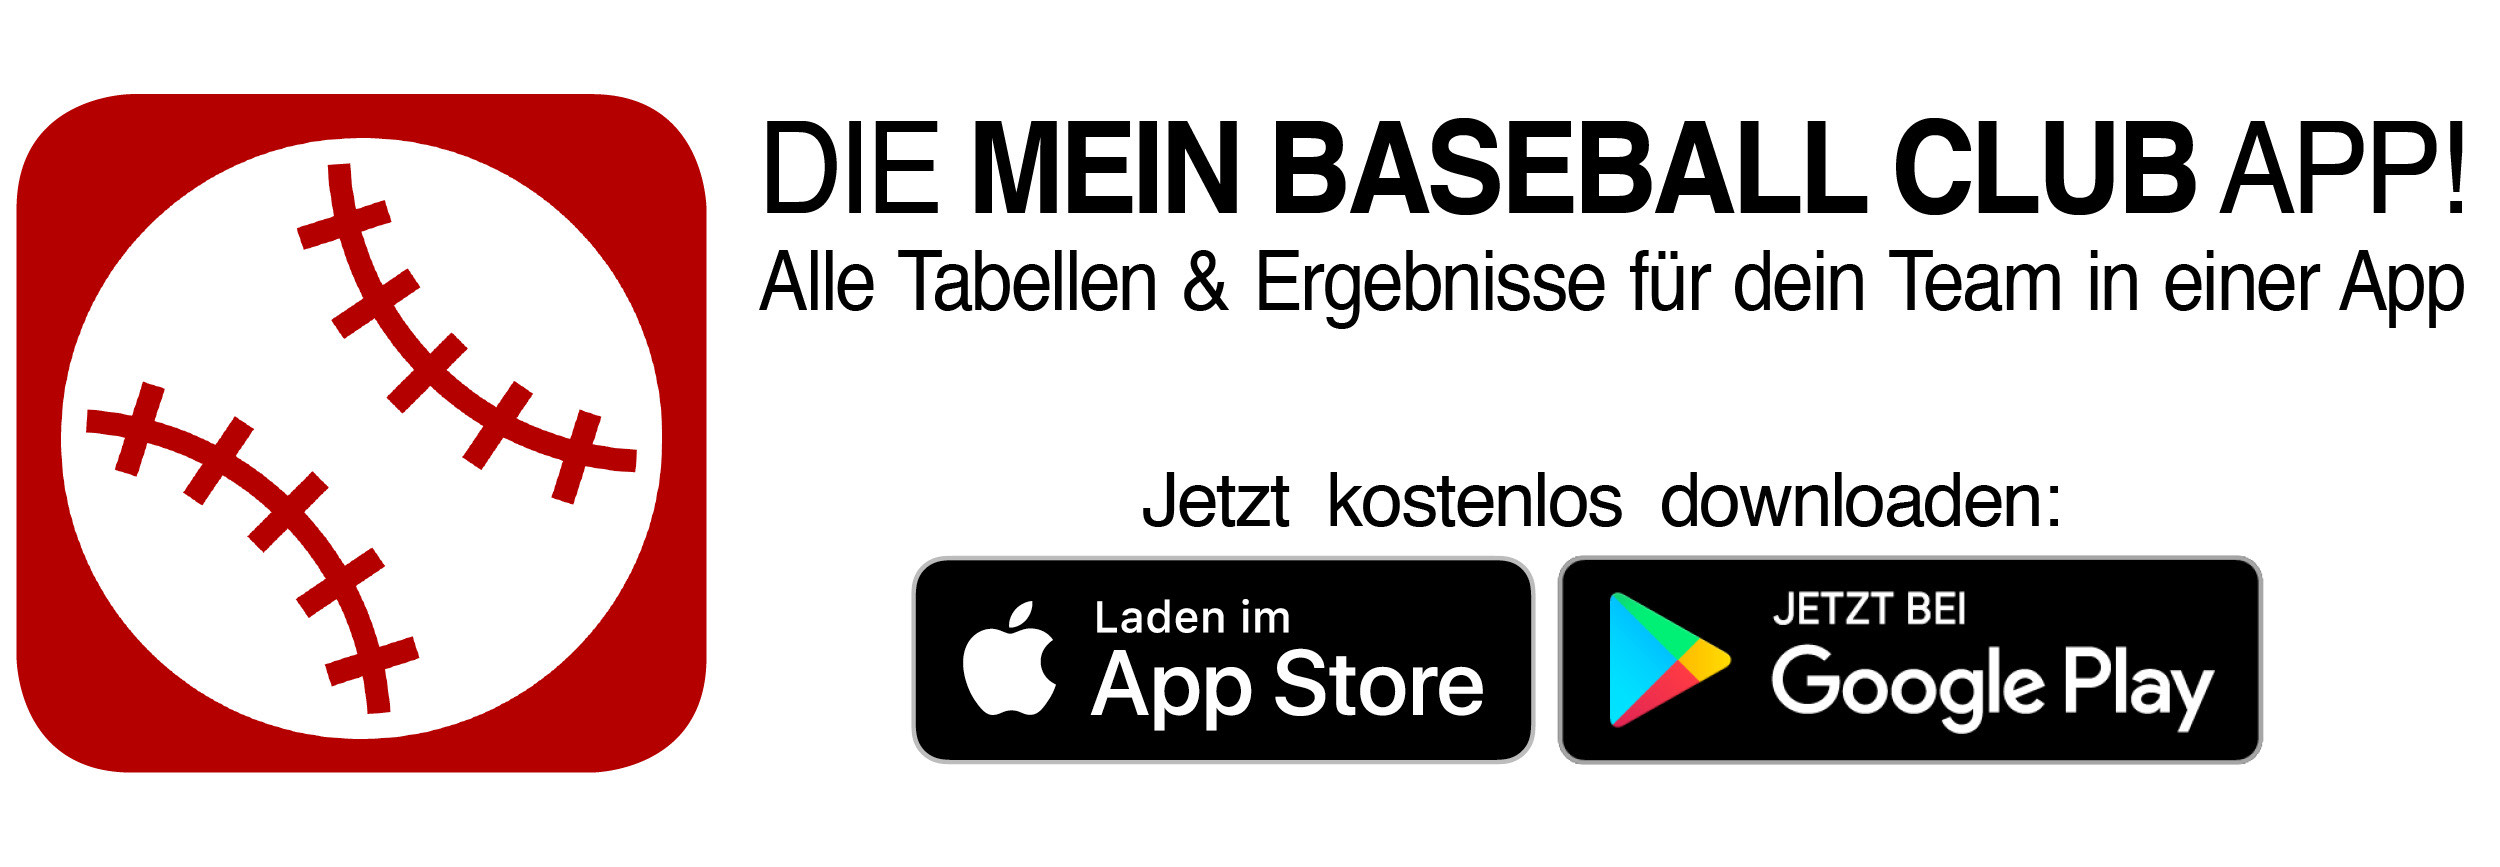 Mein Baseball Club App